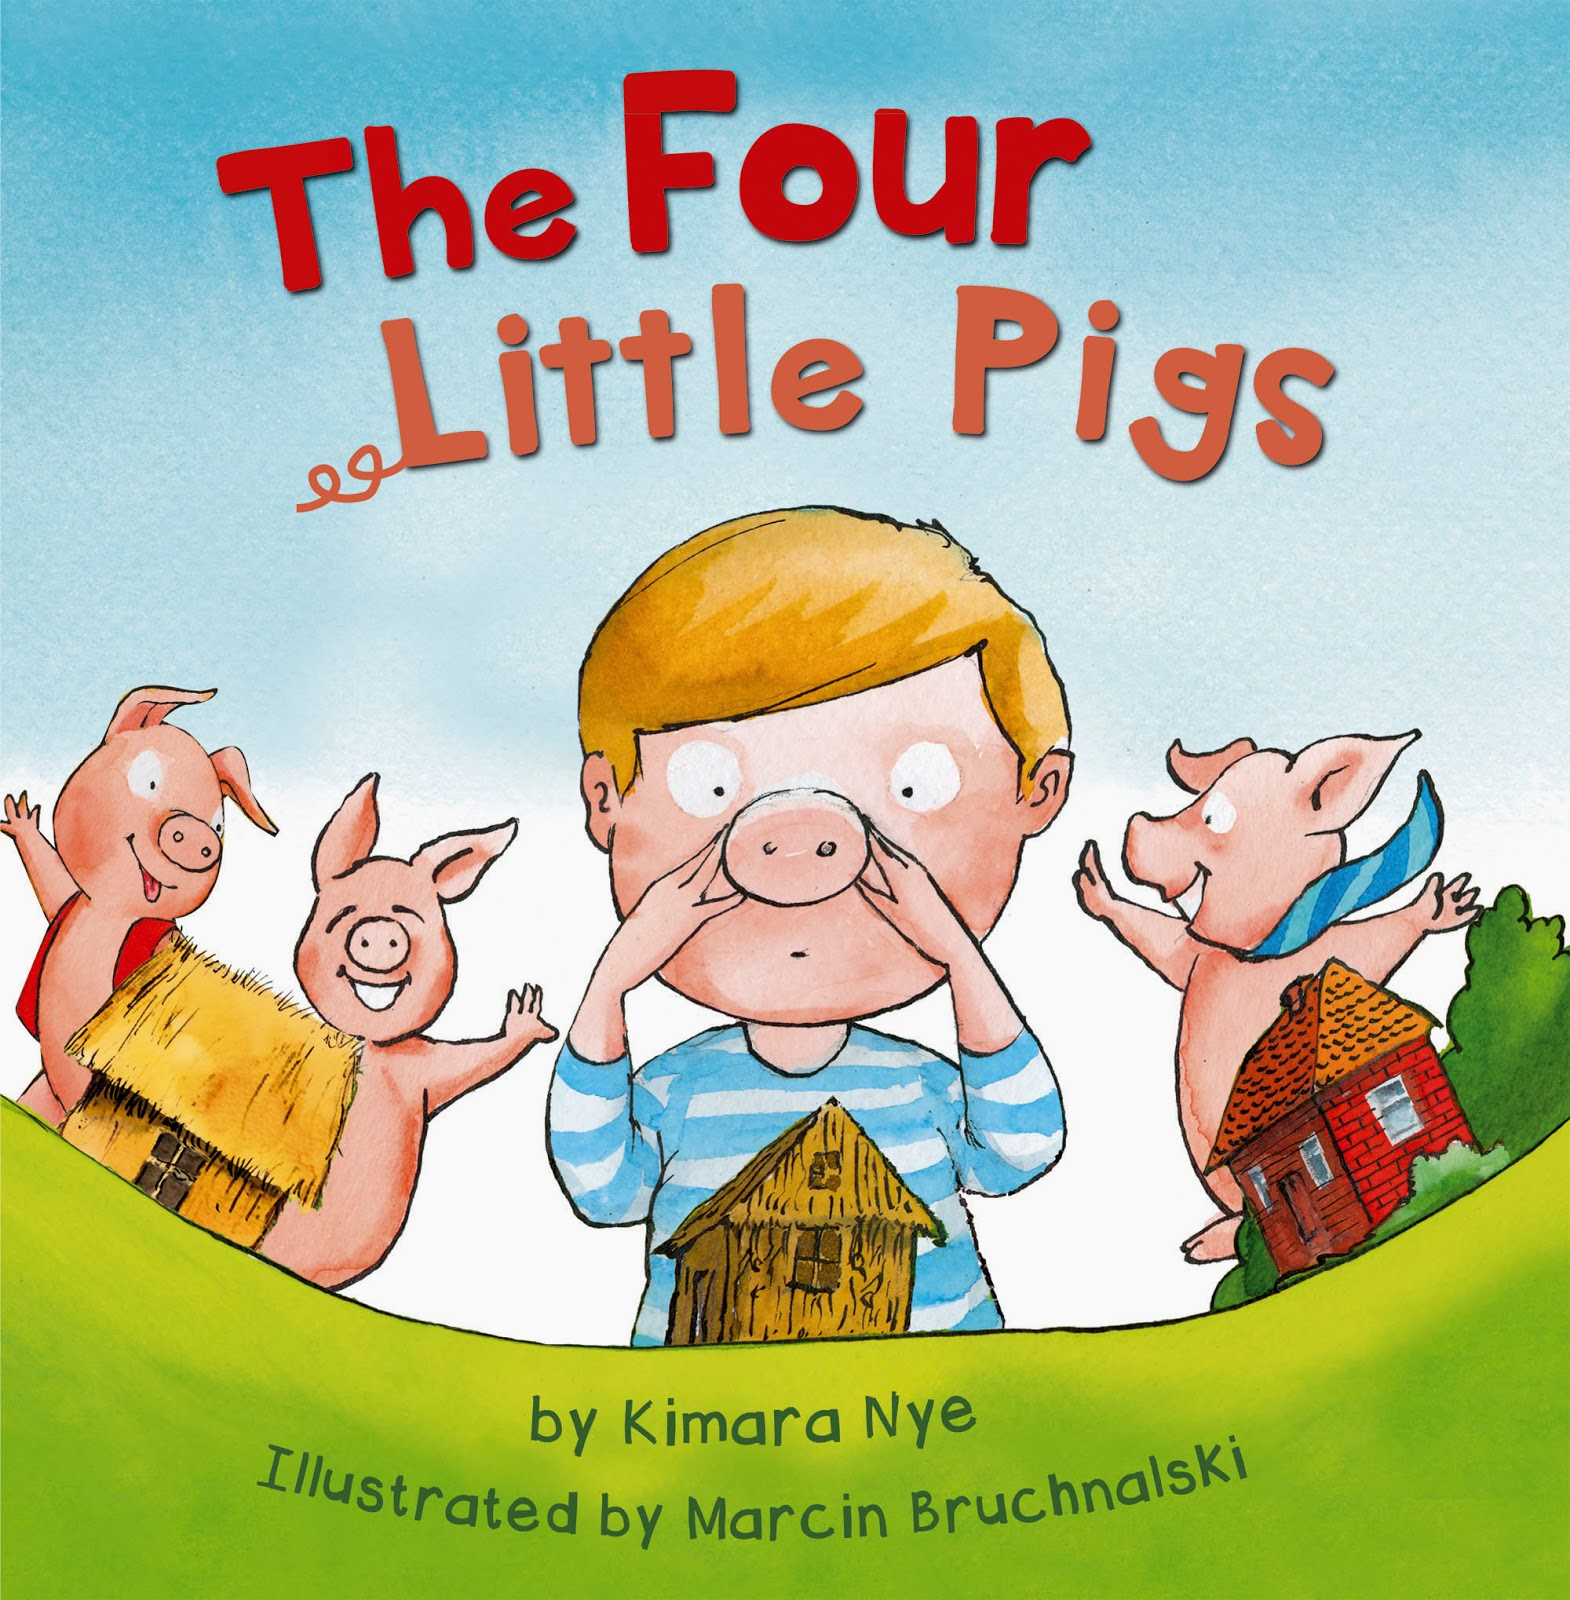 The Four Little Pigs by Kimara Nye and Marcin Bruchnalski